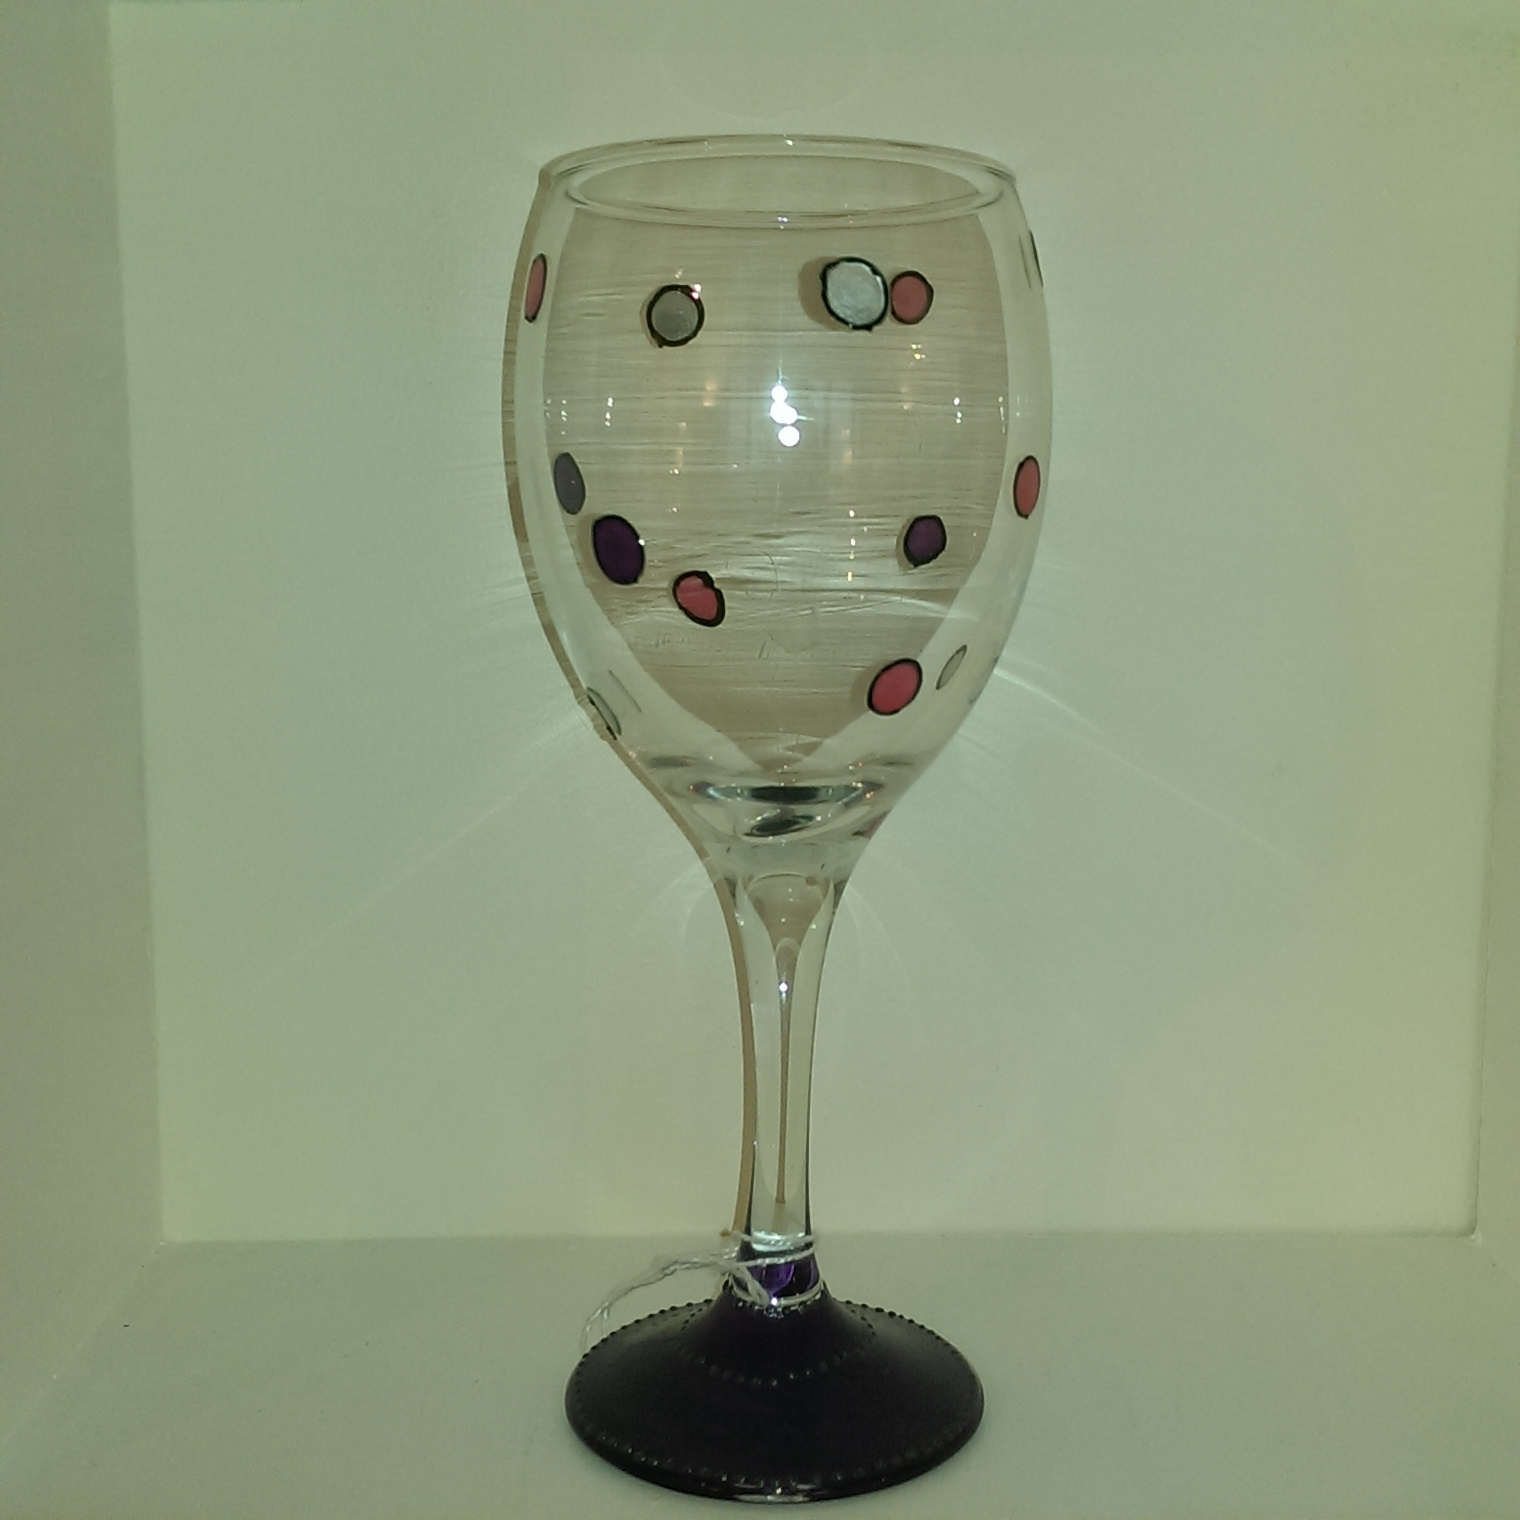 Already Painted Polka Dot Wine Glass Unique Glasses